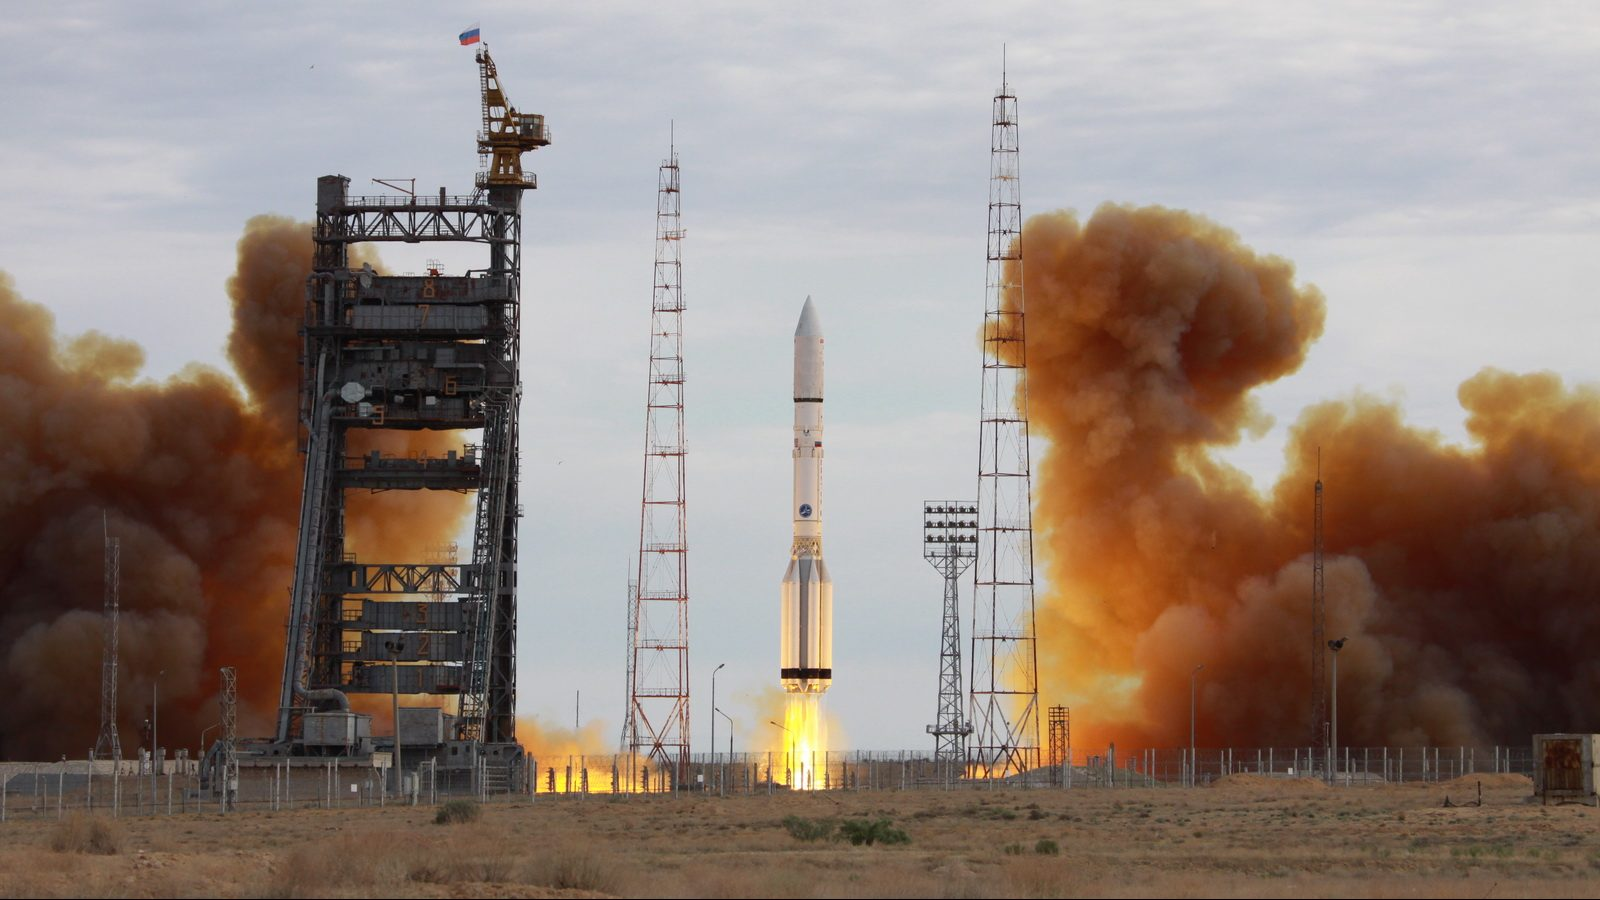 Launch of the Proton-M / EchoStar 21 mission